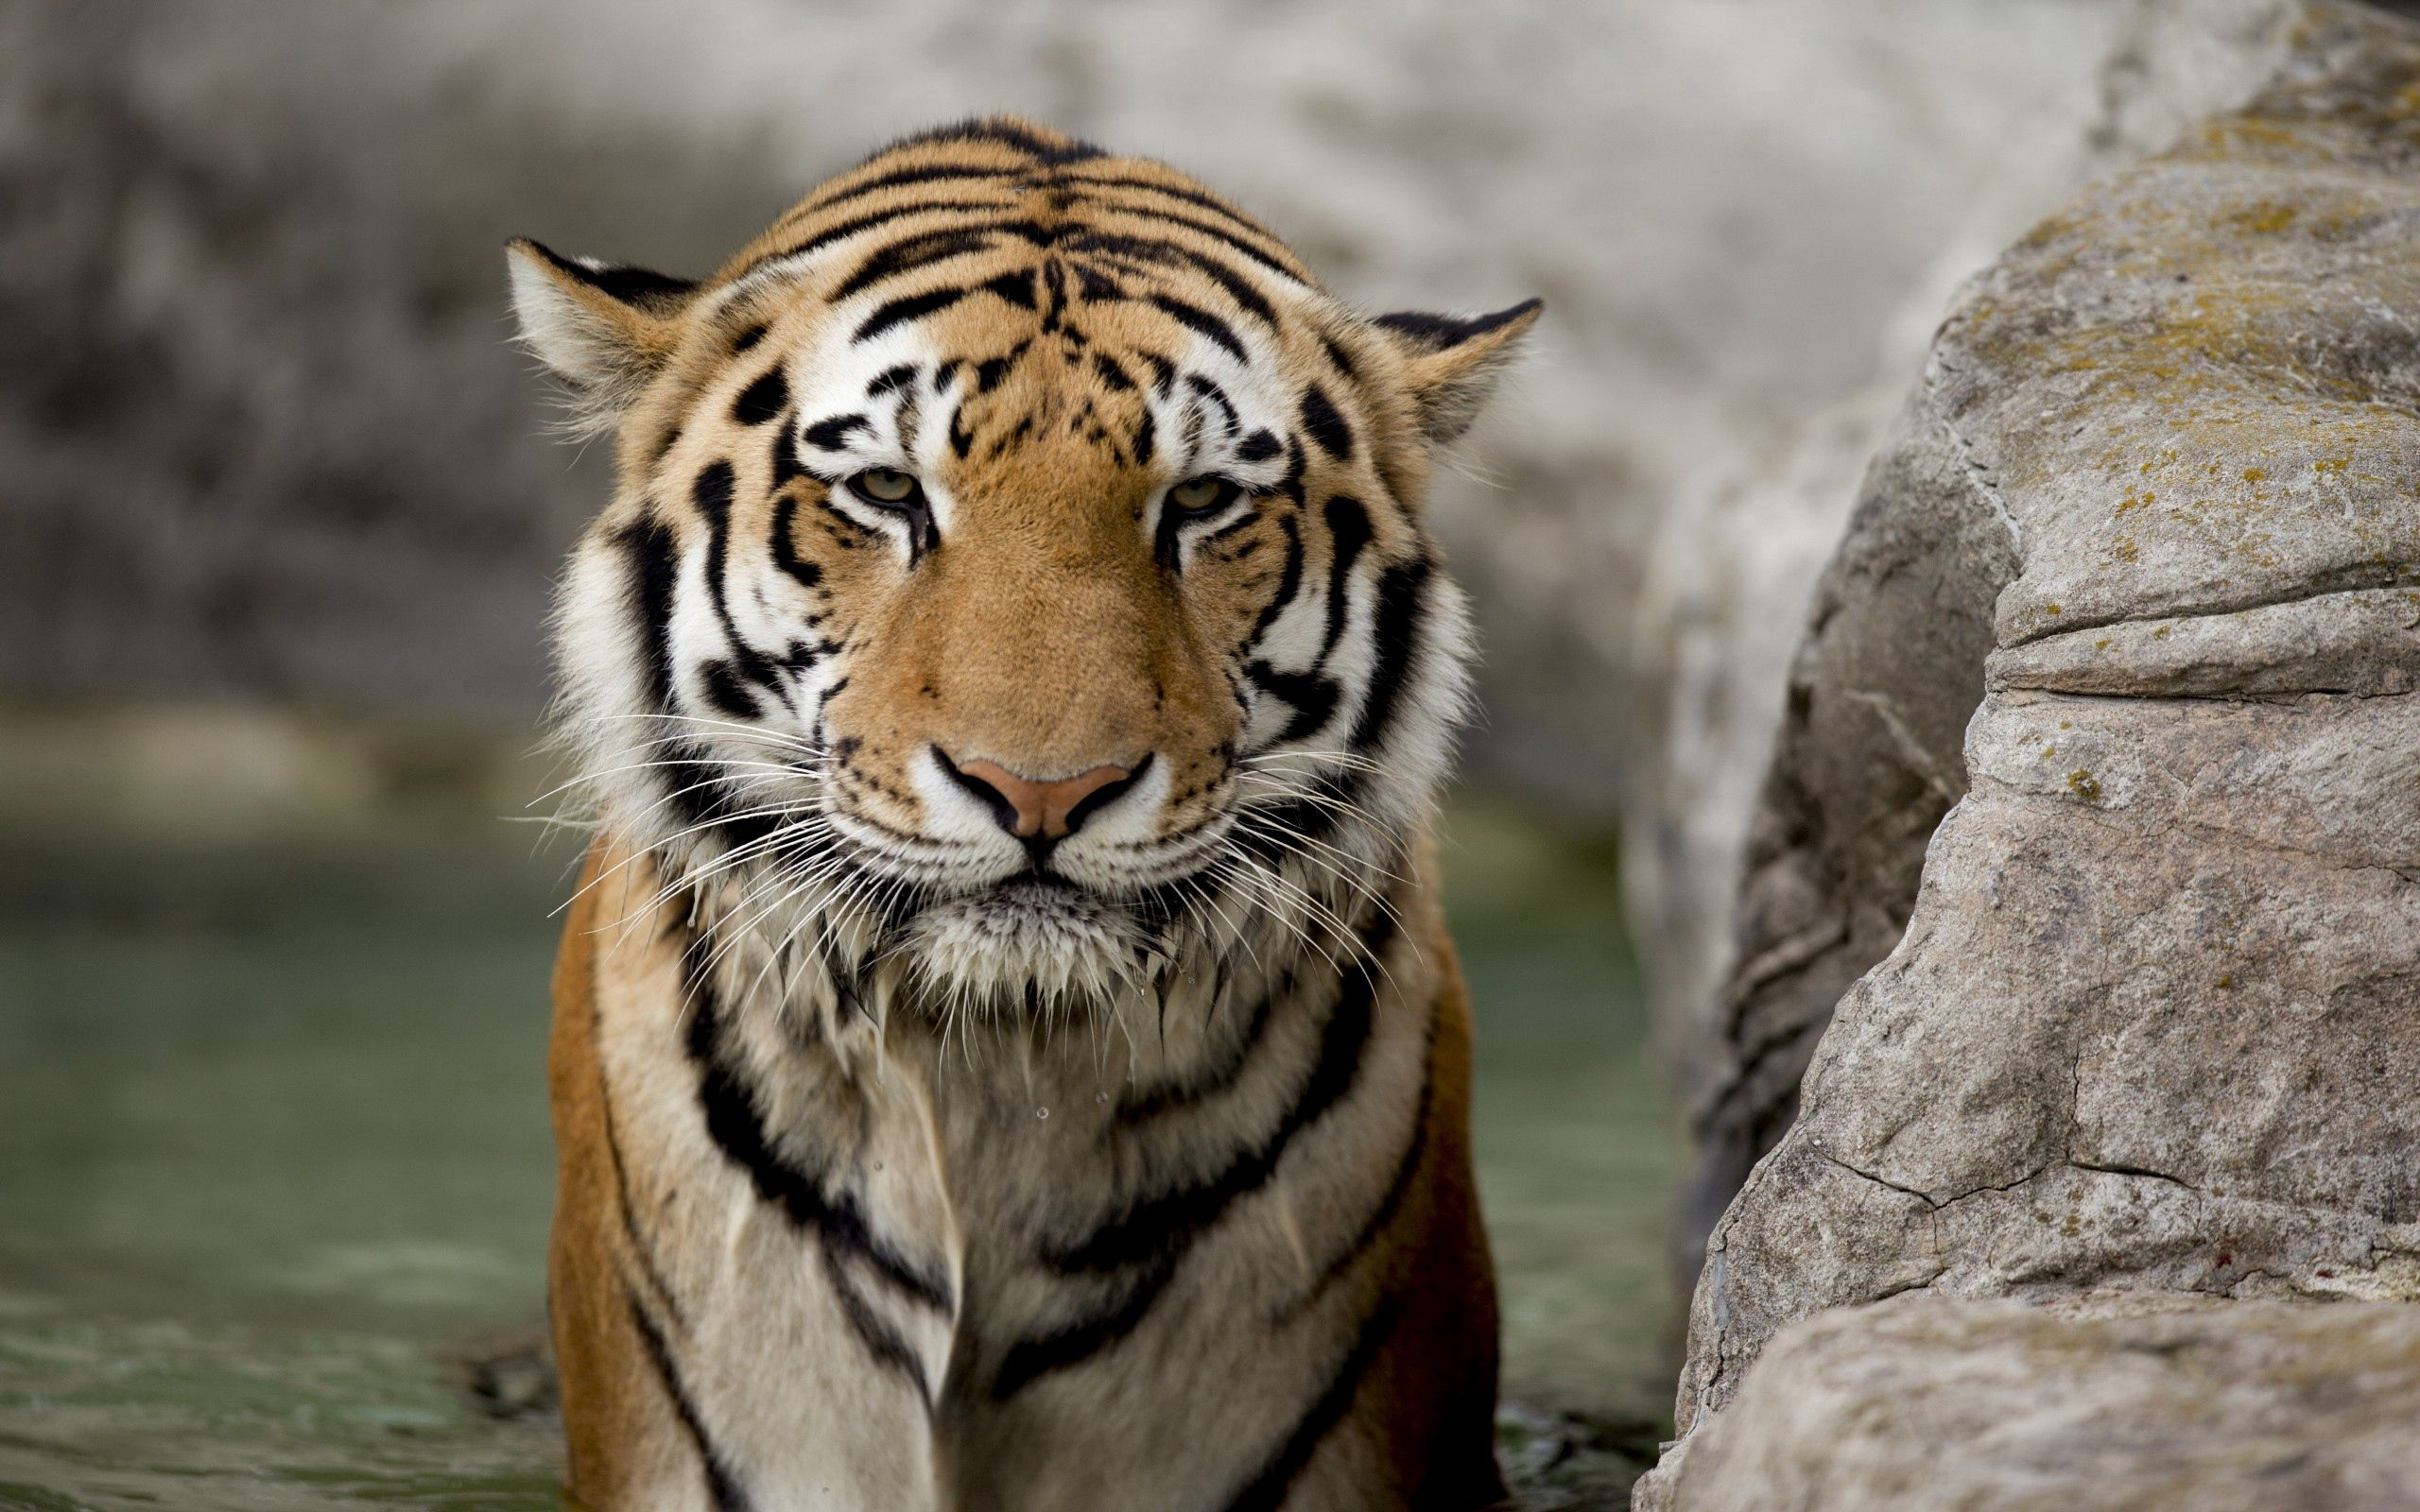 116759 download wallpaper Animals, Rock, Muzzle, Big Cat, Stone, Tiger screensavers and pictures for free